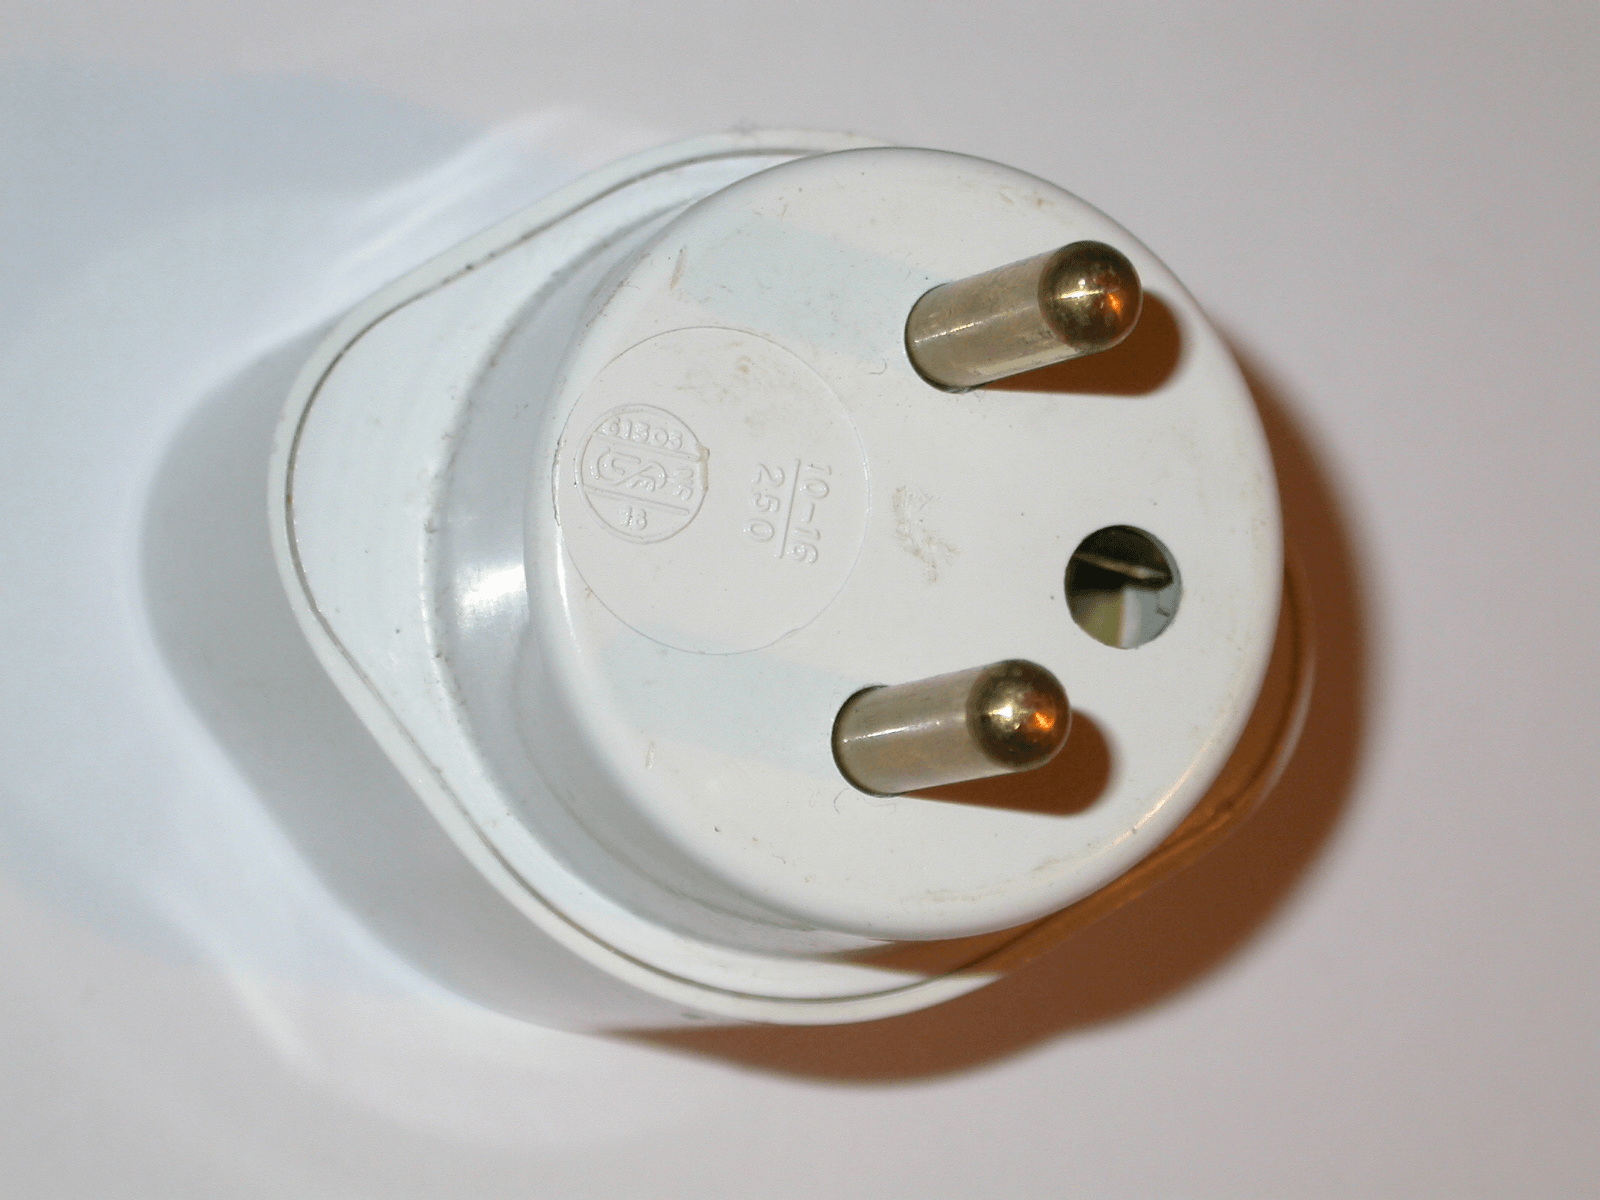 Ac Power Cords Information Engineering360 Australia Round Plug Pin Mains Cable View Cord Martin Lechler Looxix Jim Donovan Plugs